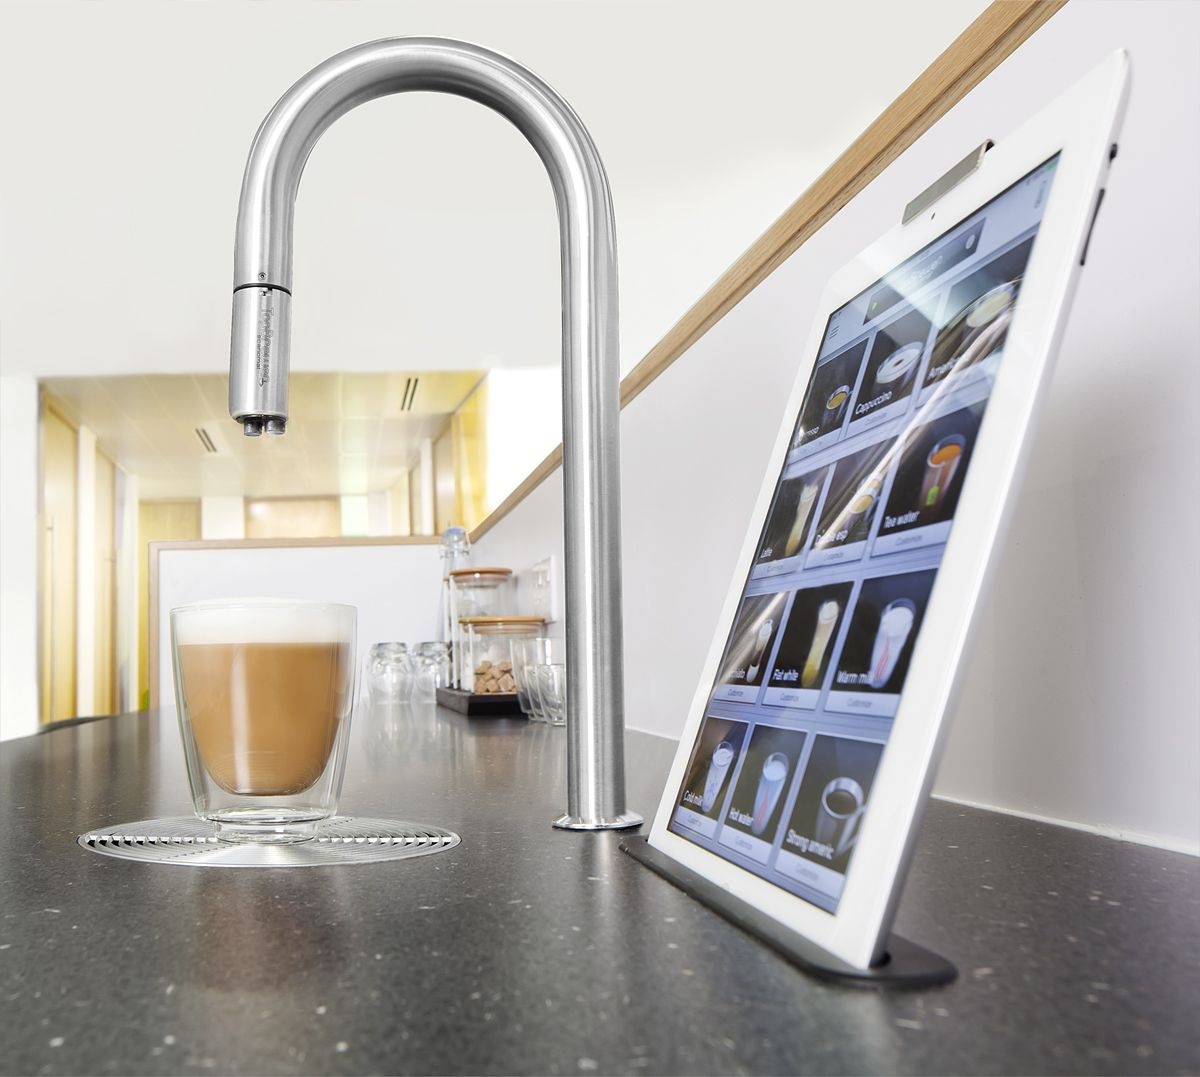 Scanomat   The New Revolutionary Luxury Kitchen Gadget! Itu0027s A Tap That  Brews Coffee,